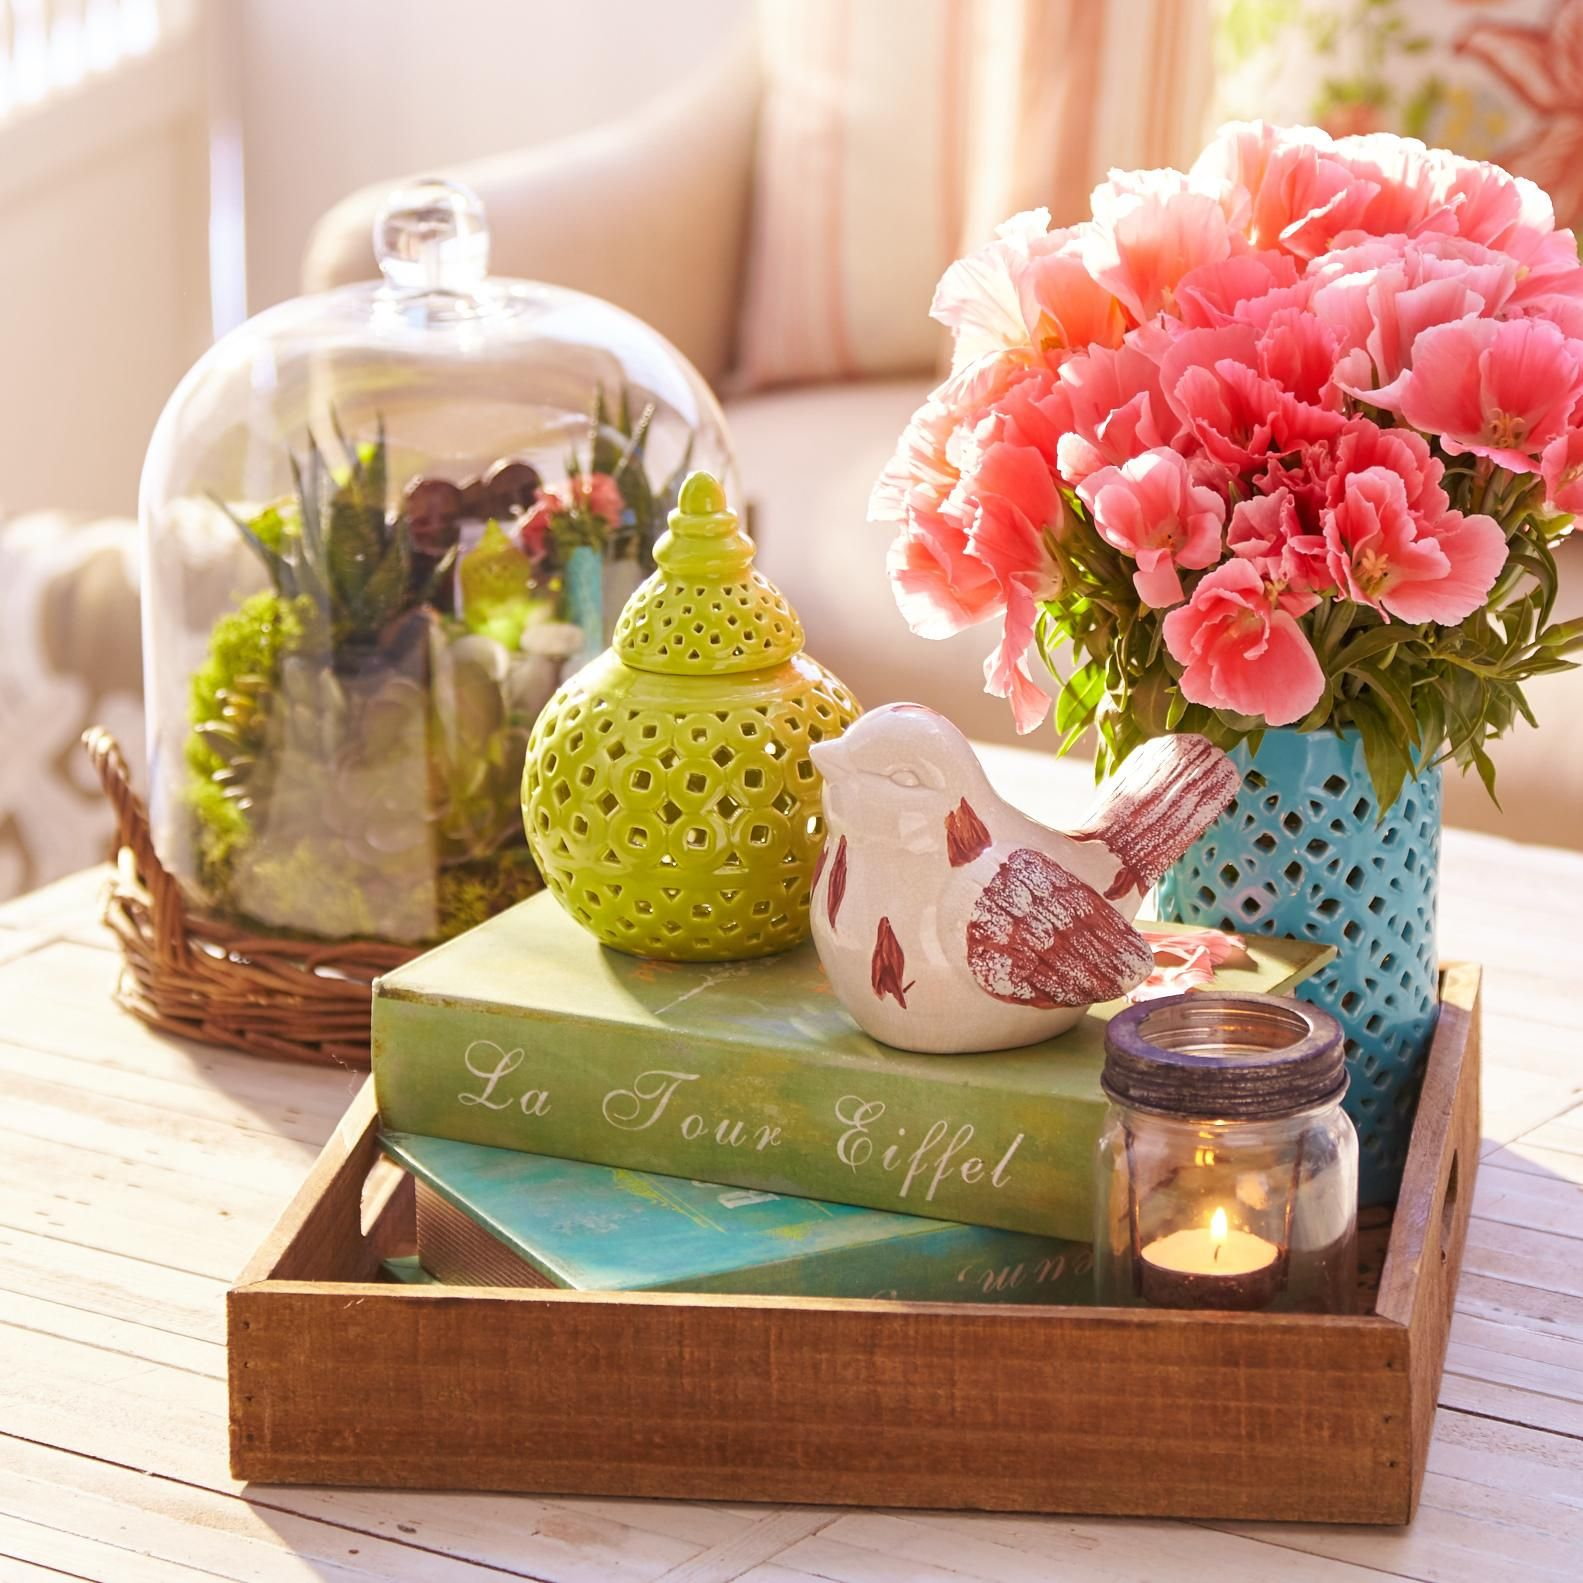 How To Style Your Coffee Table Table Decor Living Room Coffe Table Decor Center Table Decor